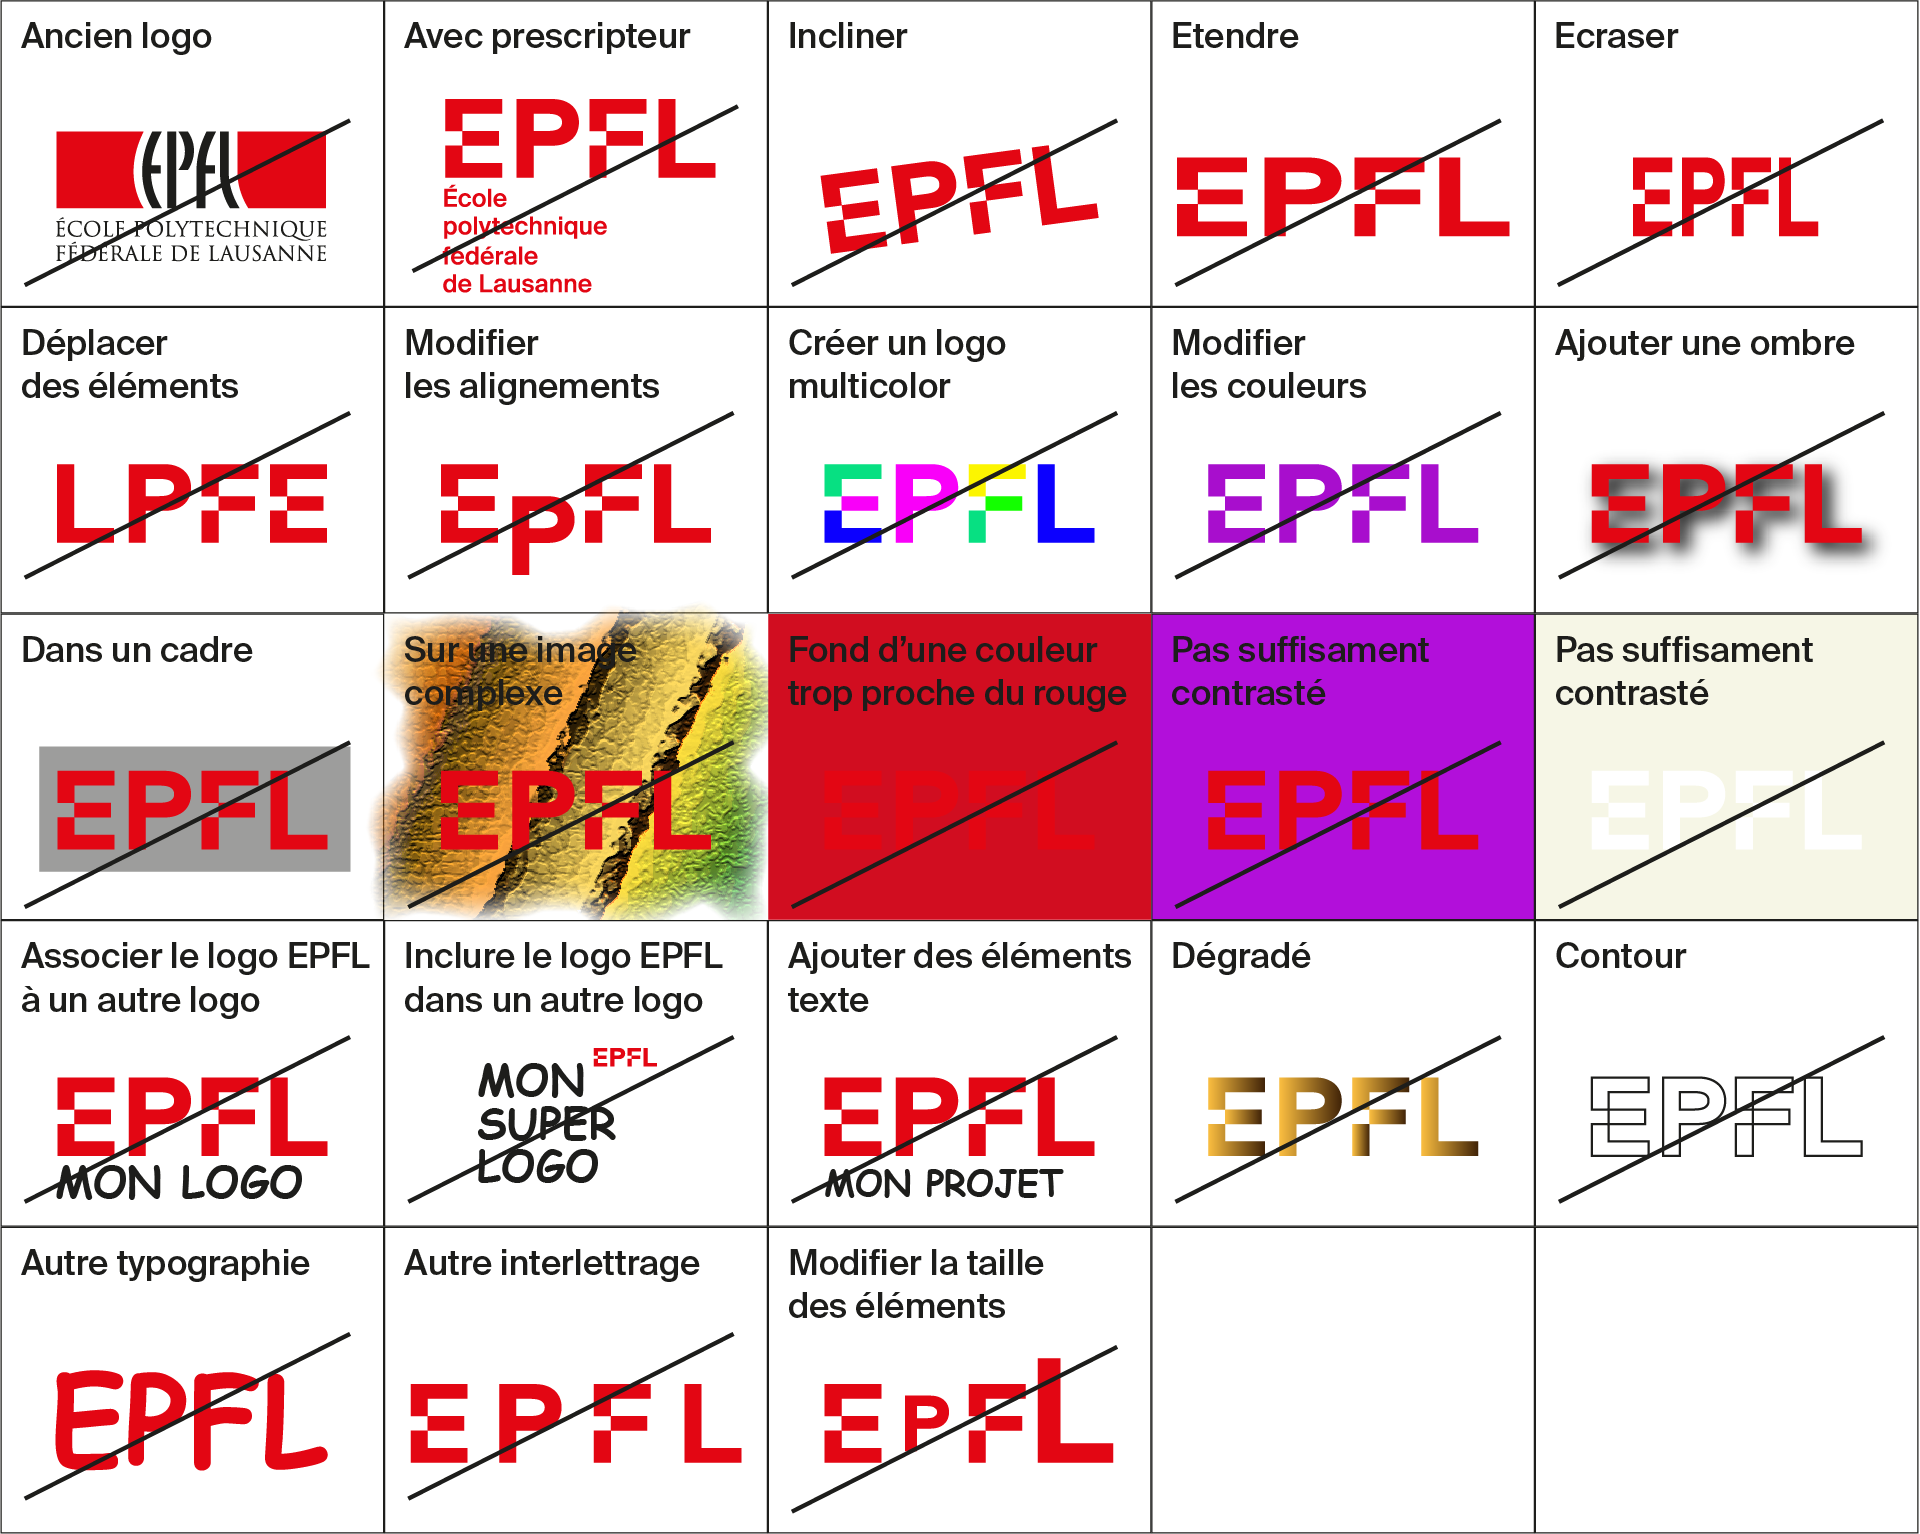 Prohibited uses of the new EPFL logo